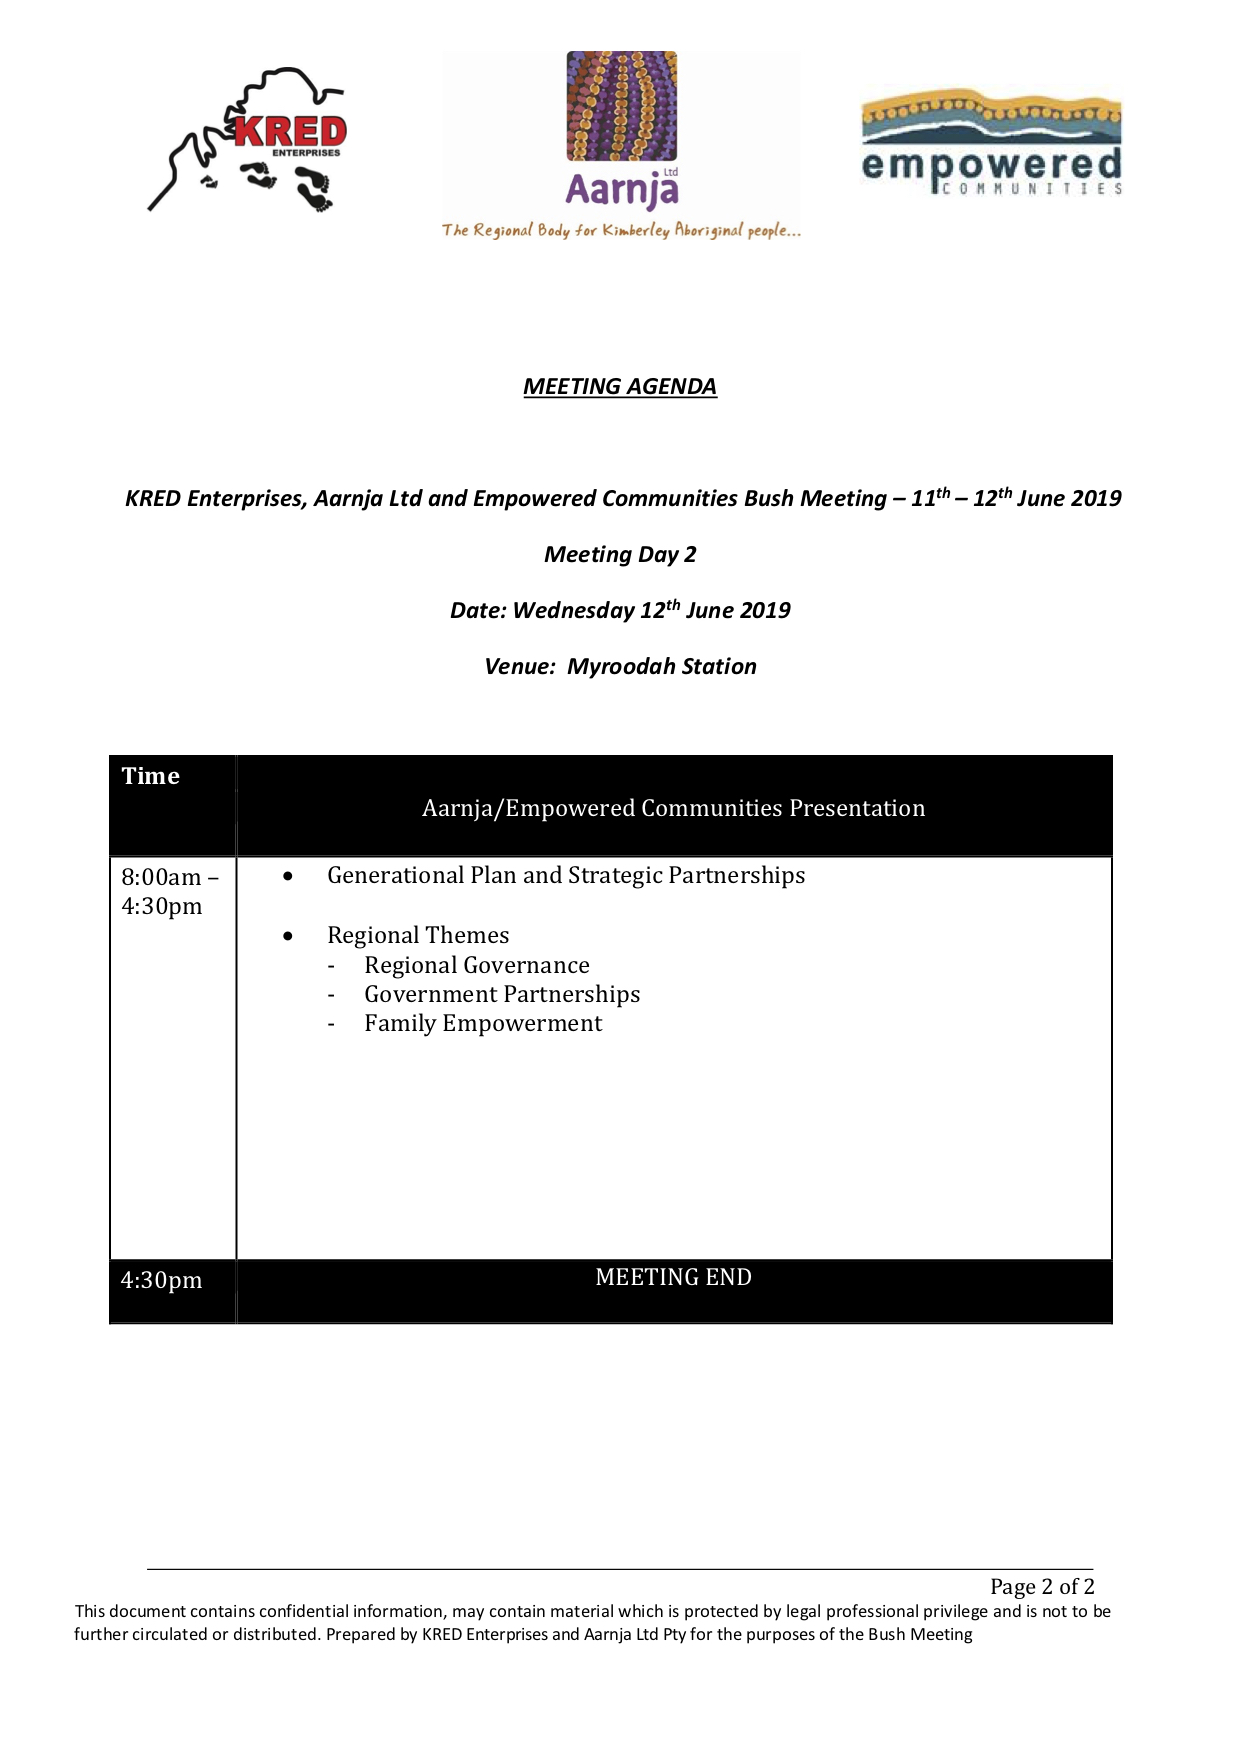 KRED  Aarnja Bush Meeting - Agenda - Final.jpg